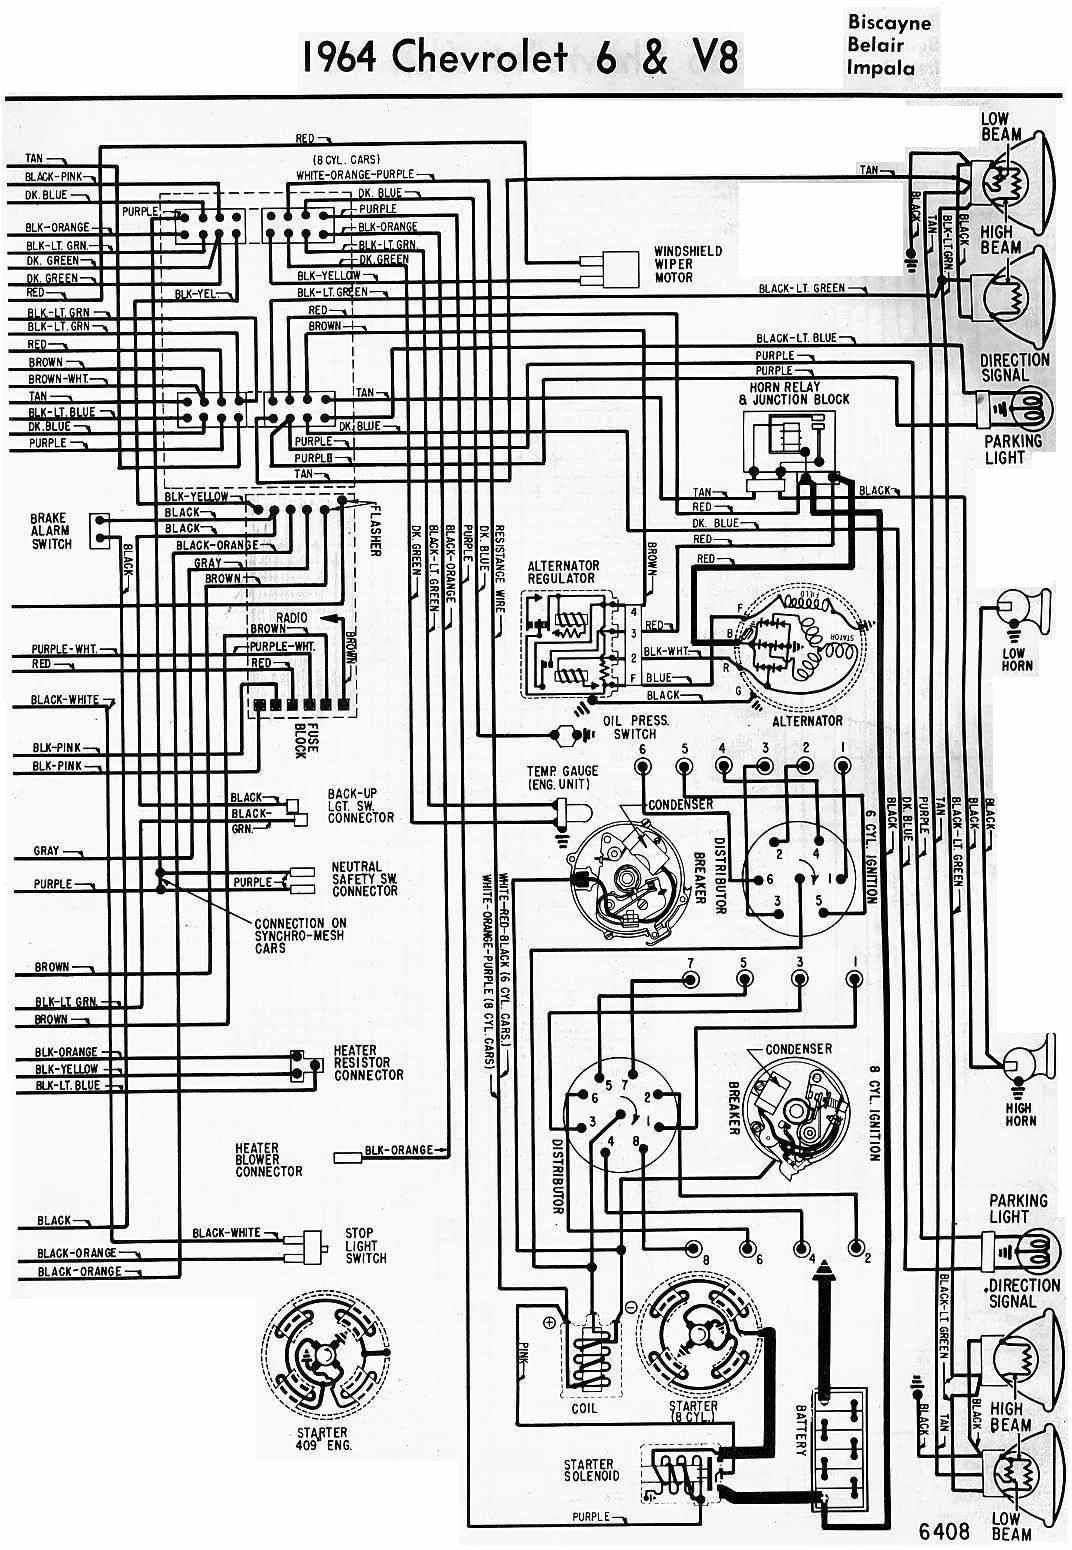 gm fuse box diagram 1964 impala wiring diagram loadgm fuse box diagram 1964 impala data diagram [ 1072 x 1550 Pixel ]